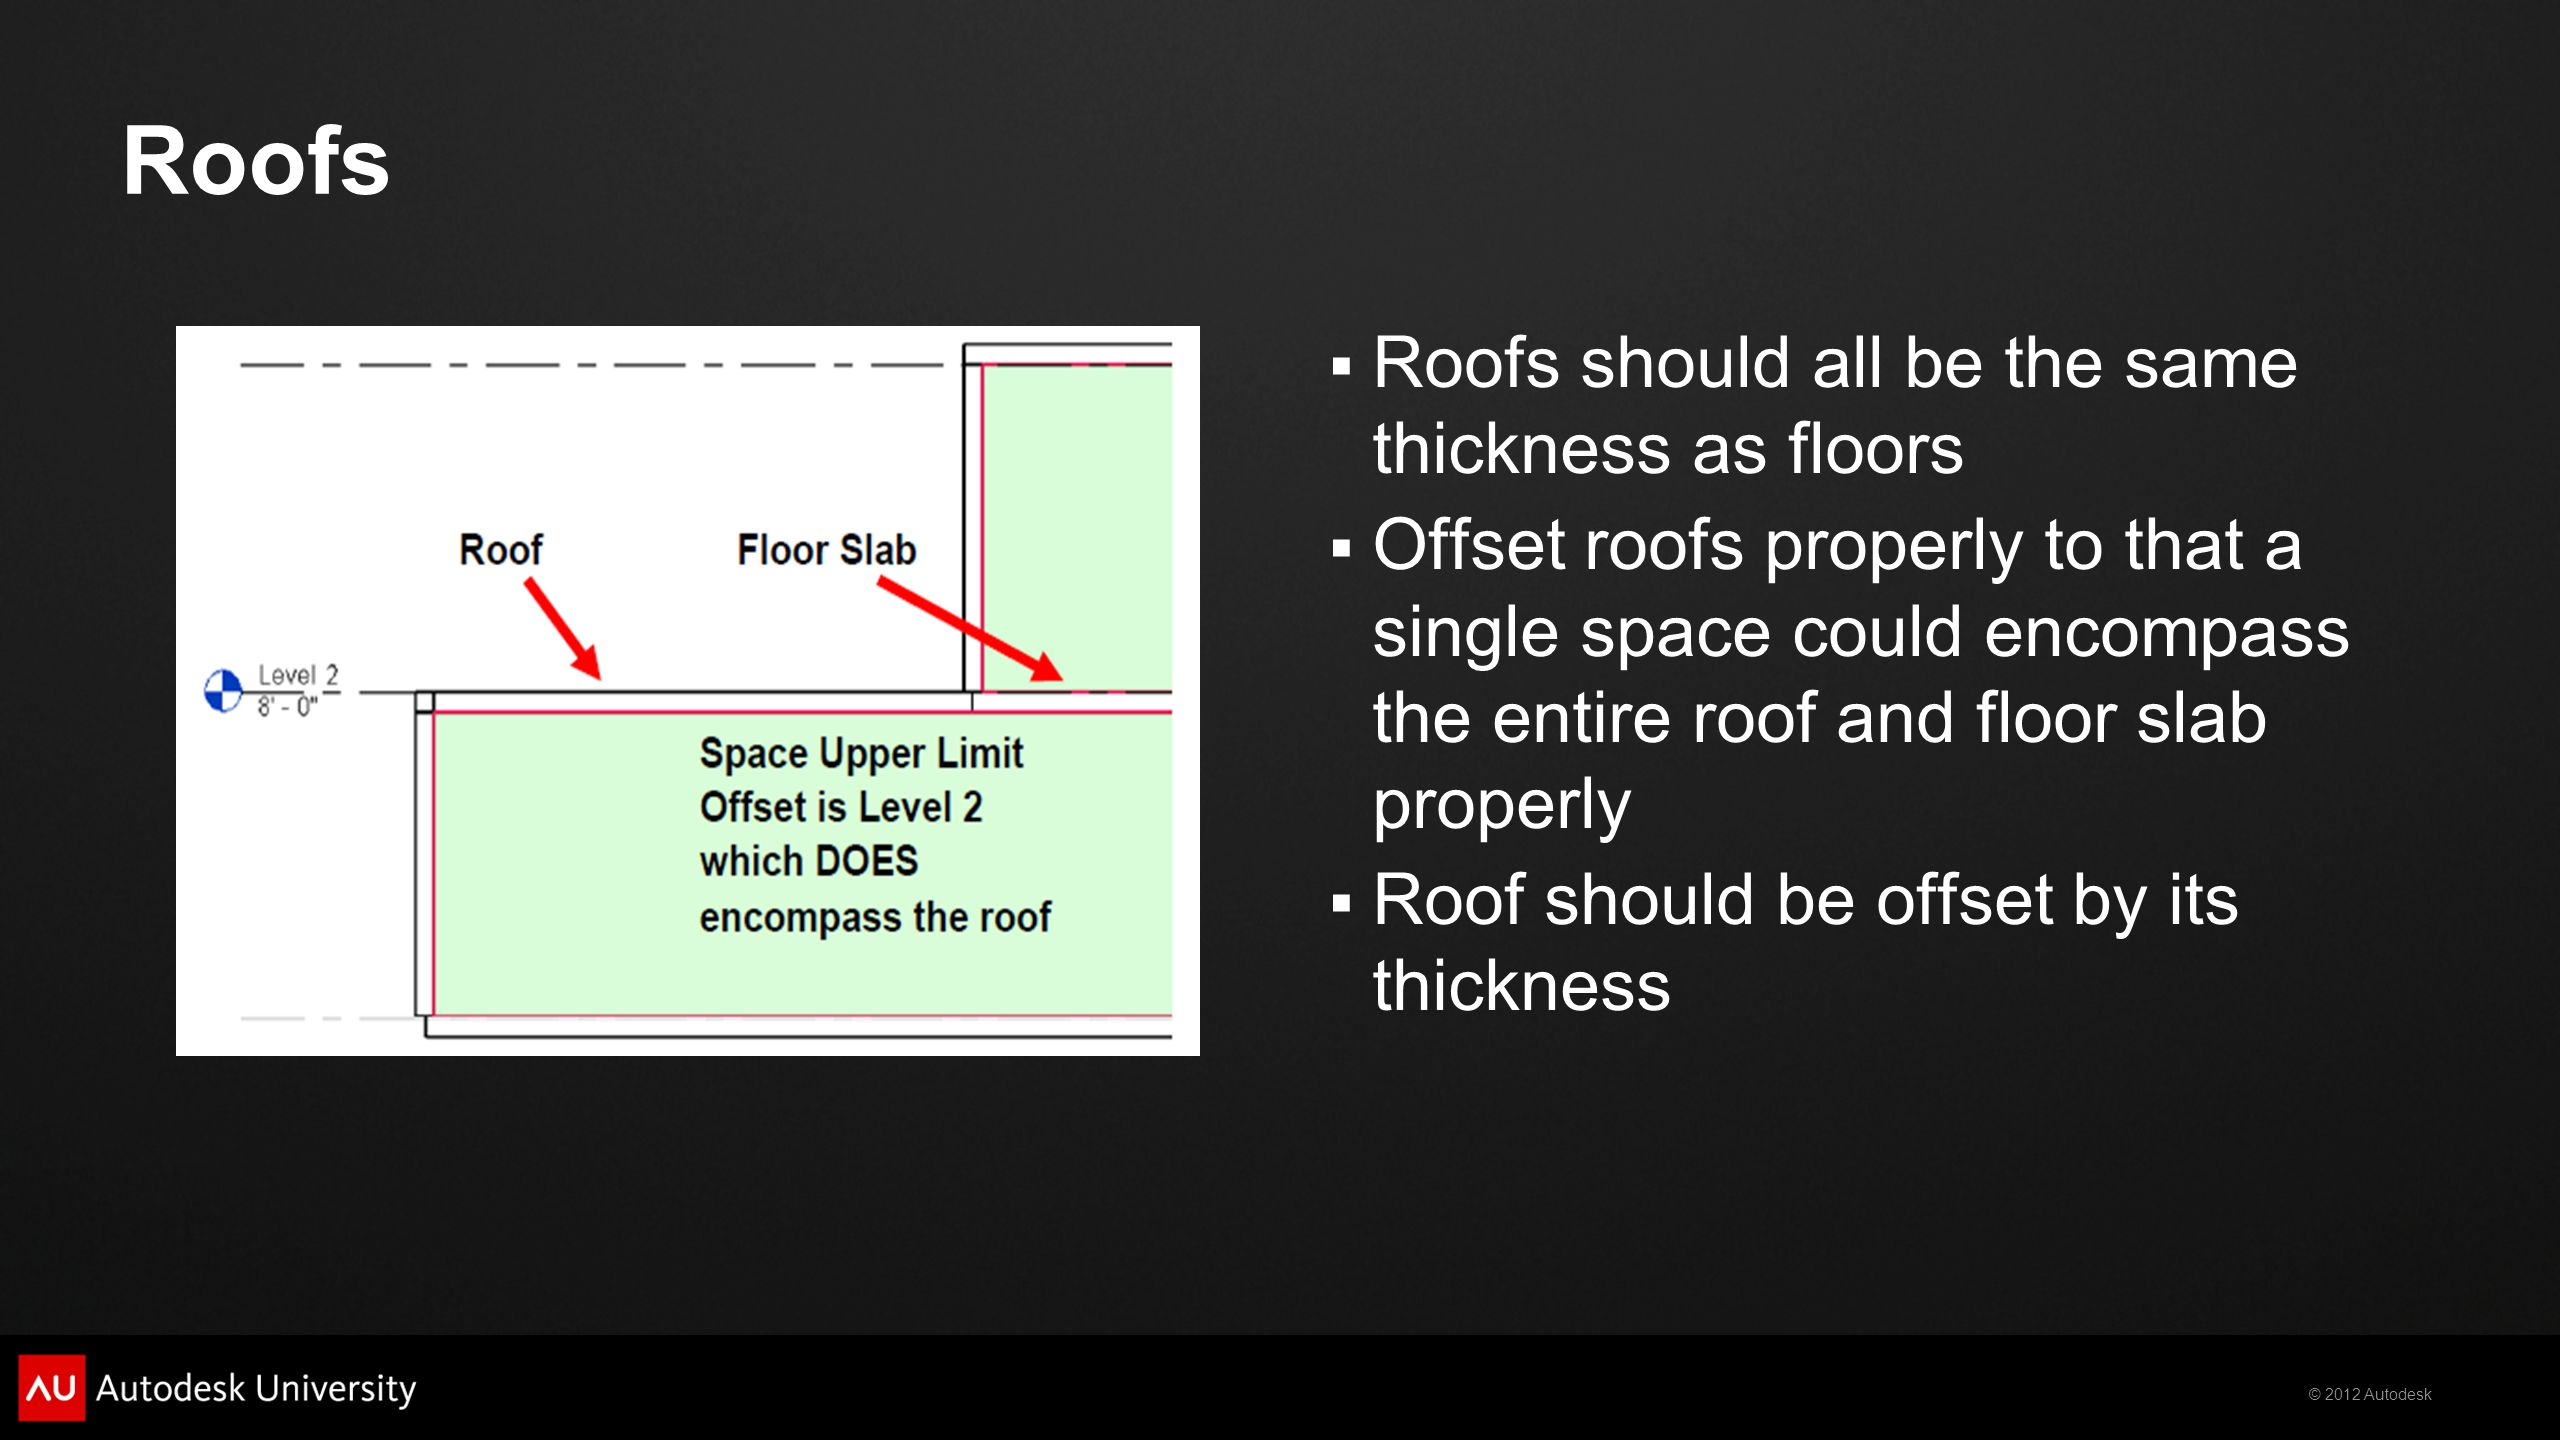 © 2012 Autodesk Roofs Roofs should all be the same thickness as floors Offset roofs properly to that a single space could encompass the entire roof and floor slab properly Roof should be offset by its thickness